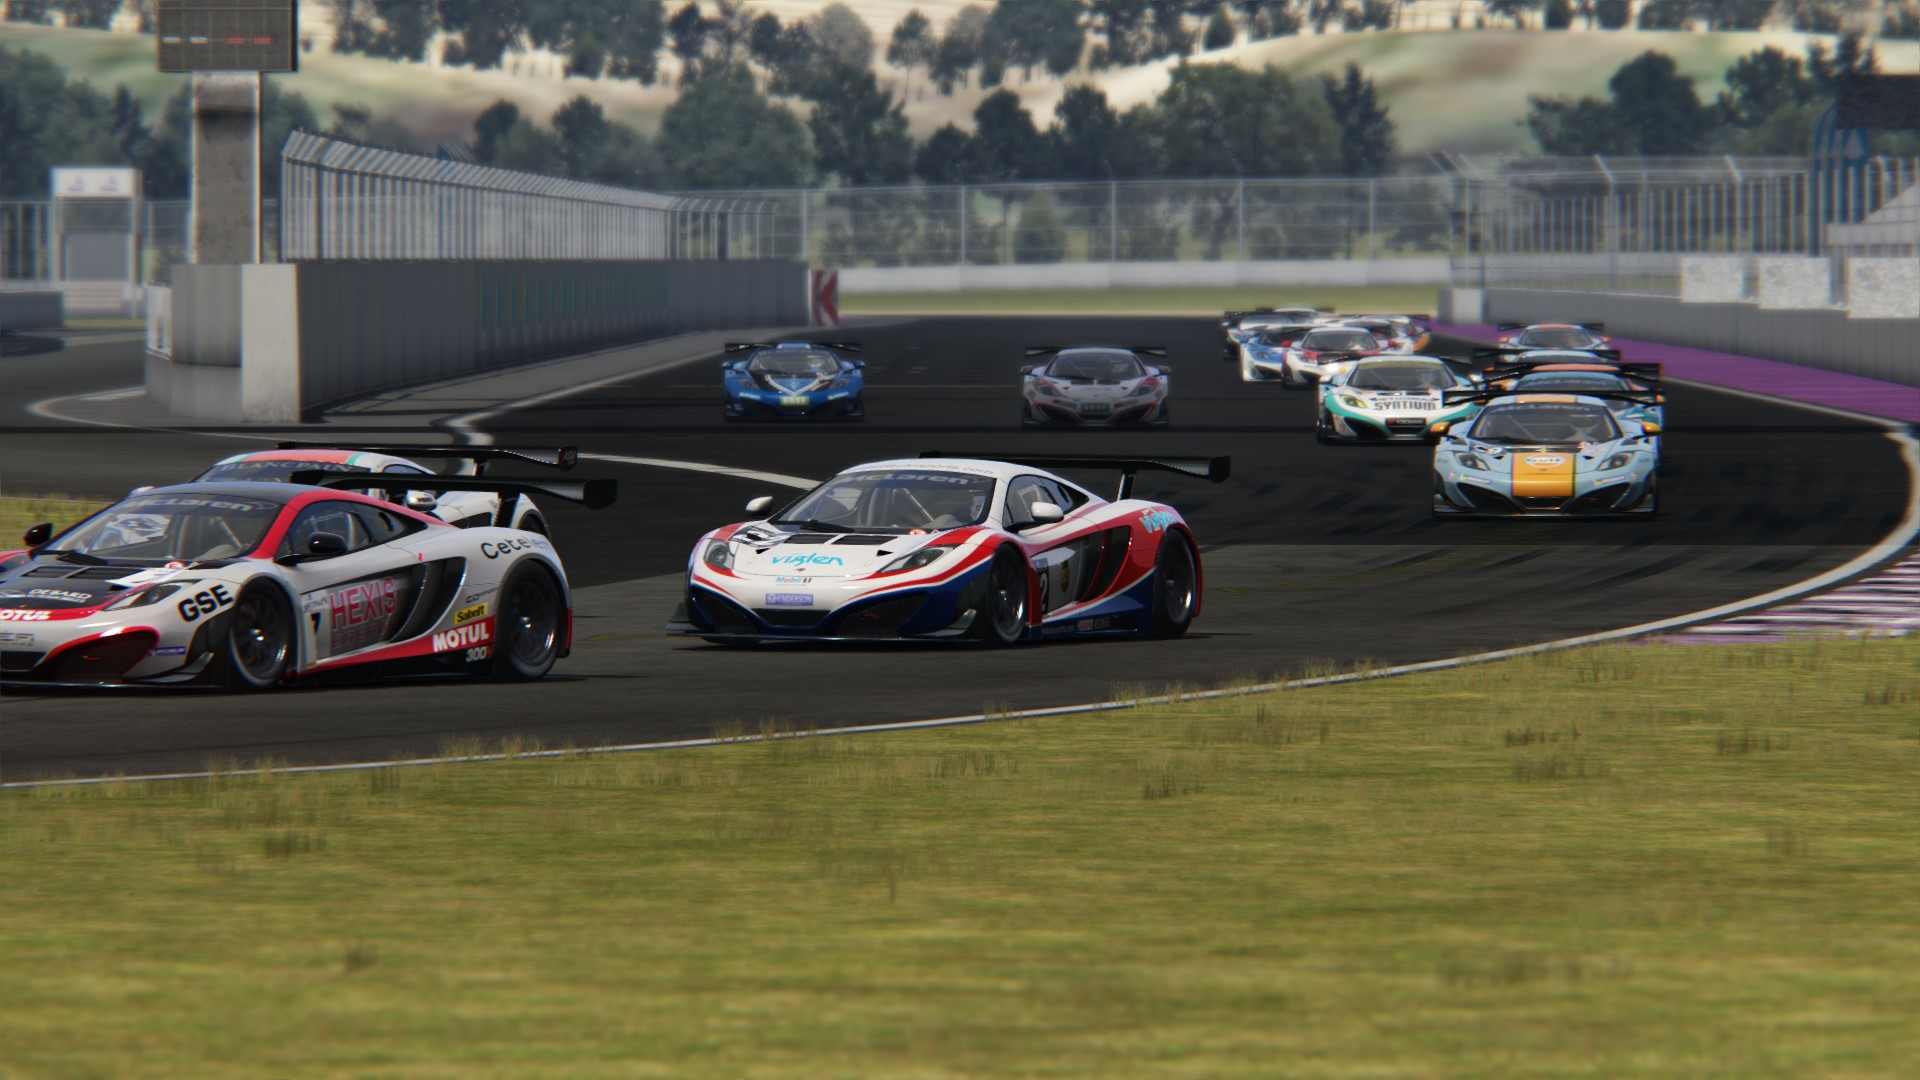 Screenshot_mclaren_mp412c_gt3_toscana_22-5-117-15-21-43.jpg